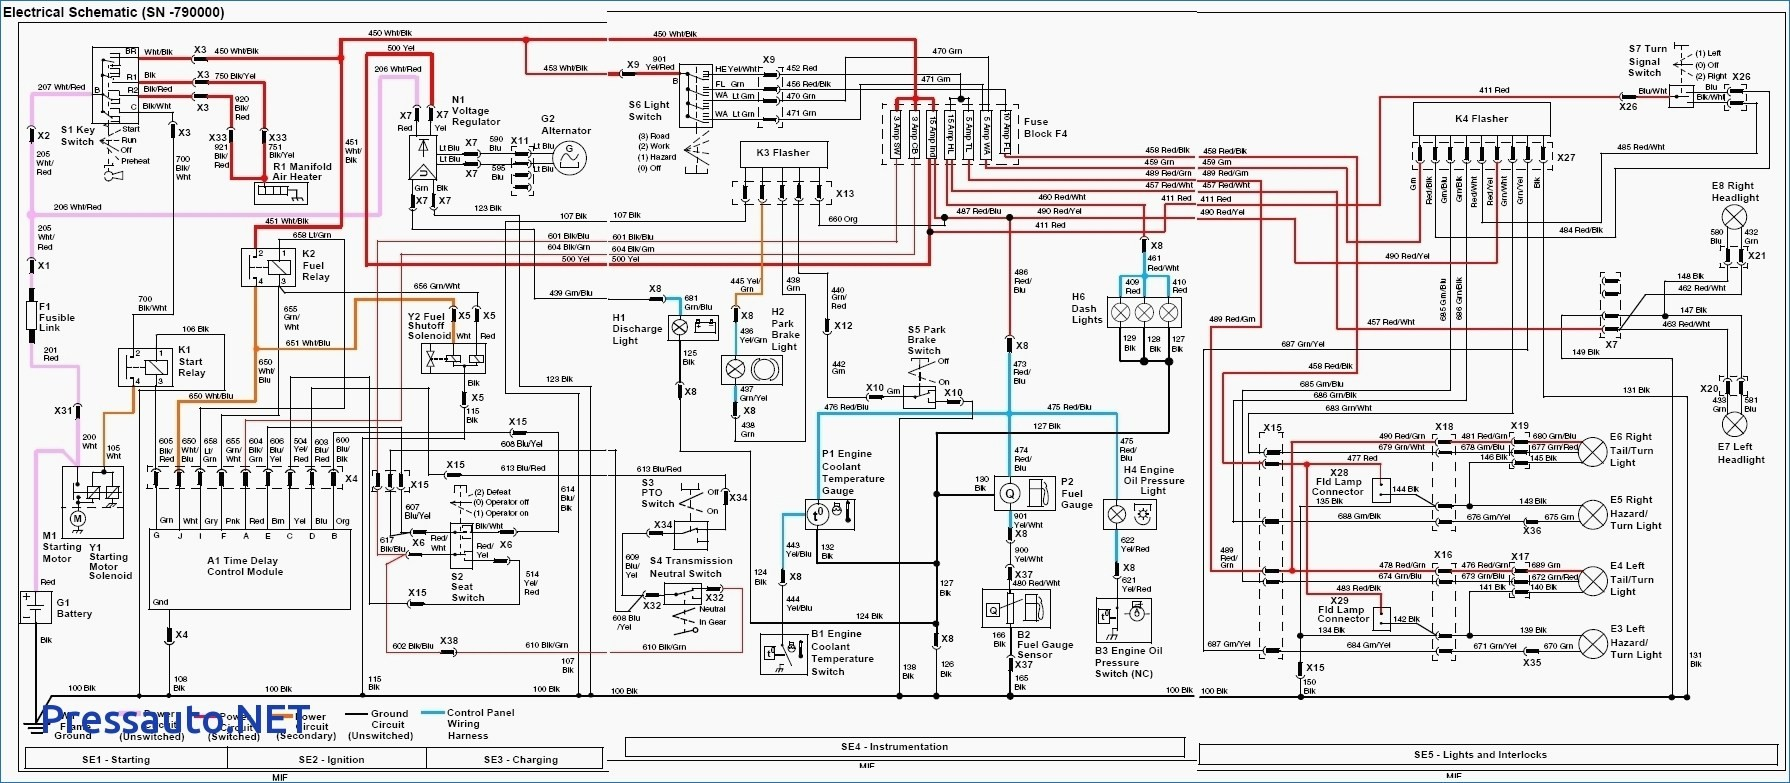 x324 wiring diagram simple wiring diagram site john deere x324 wiring diagram wiring schematics diagram john deere x324 attachments john deere x324 wiring